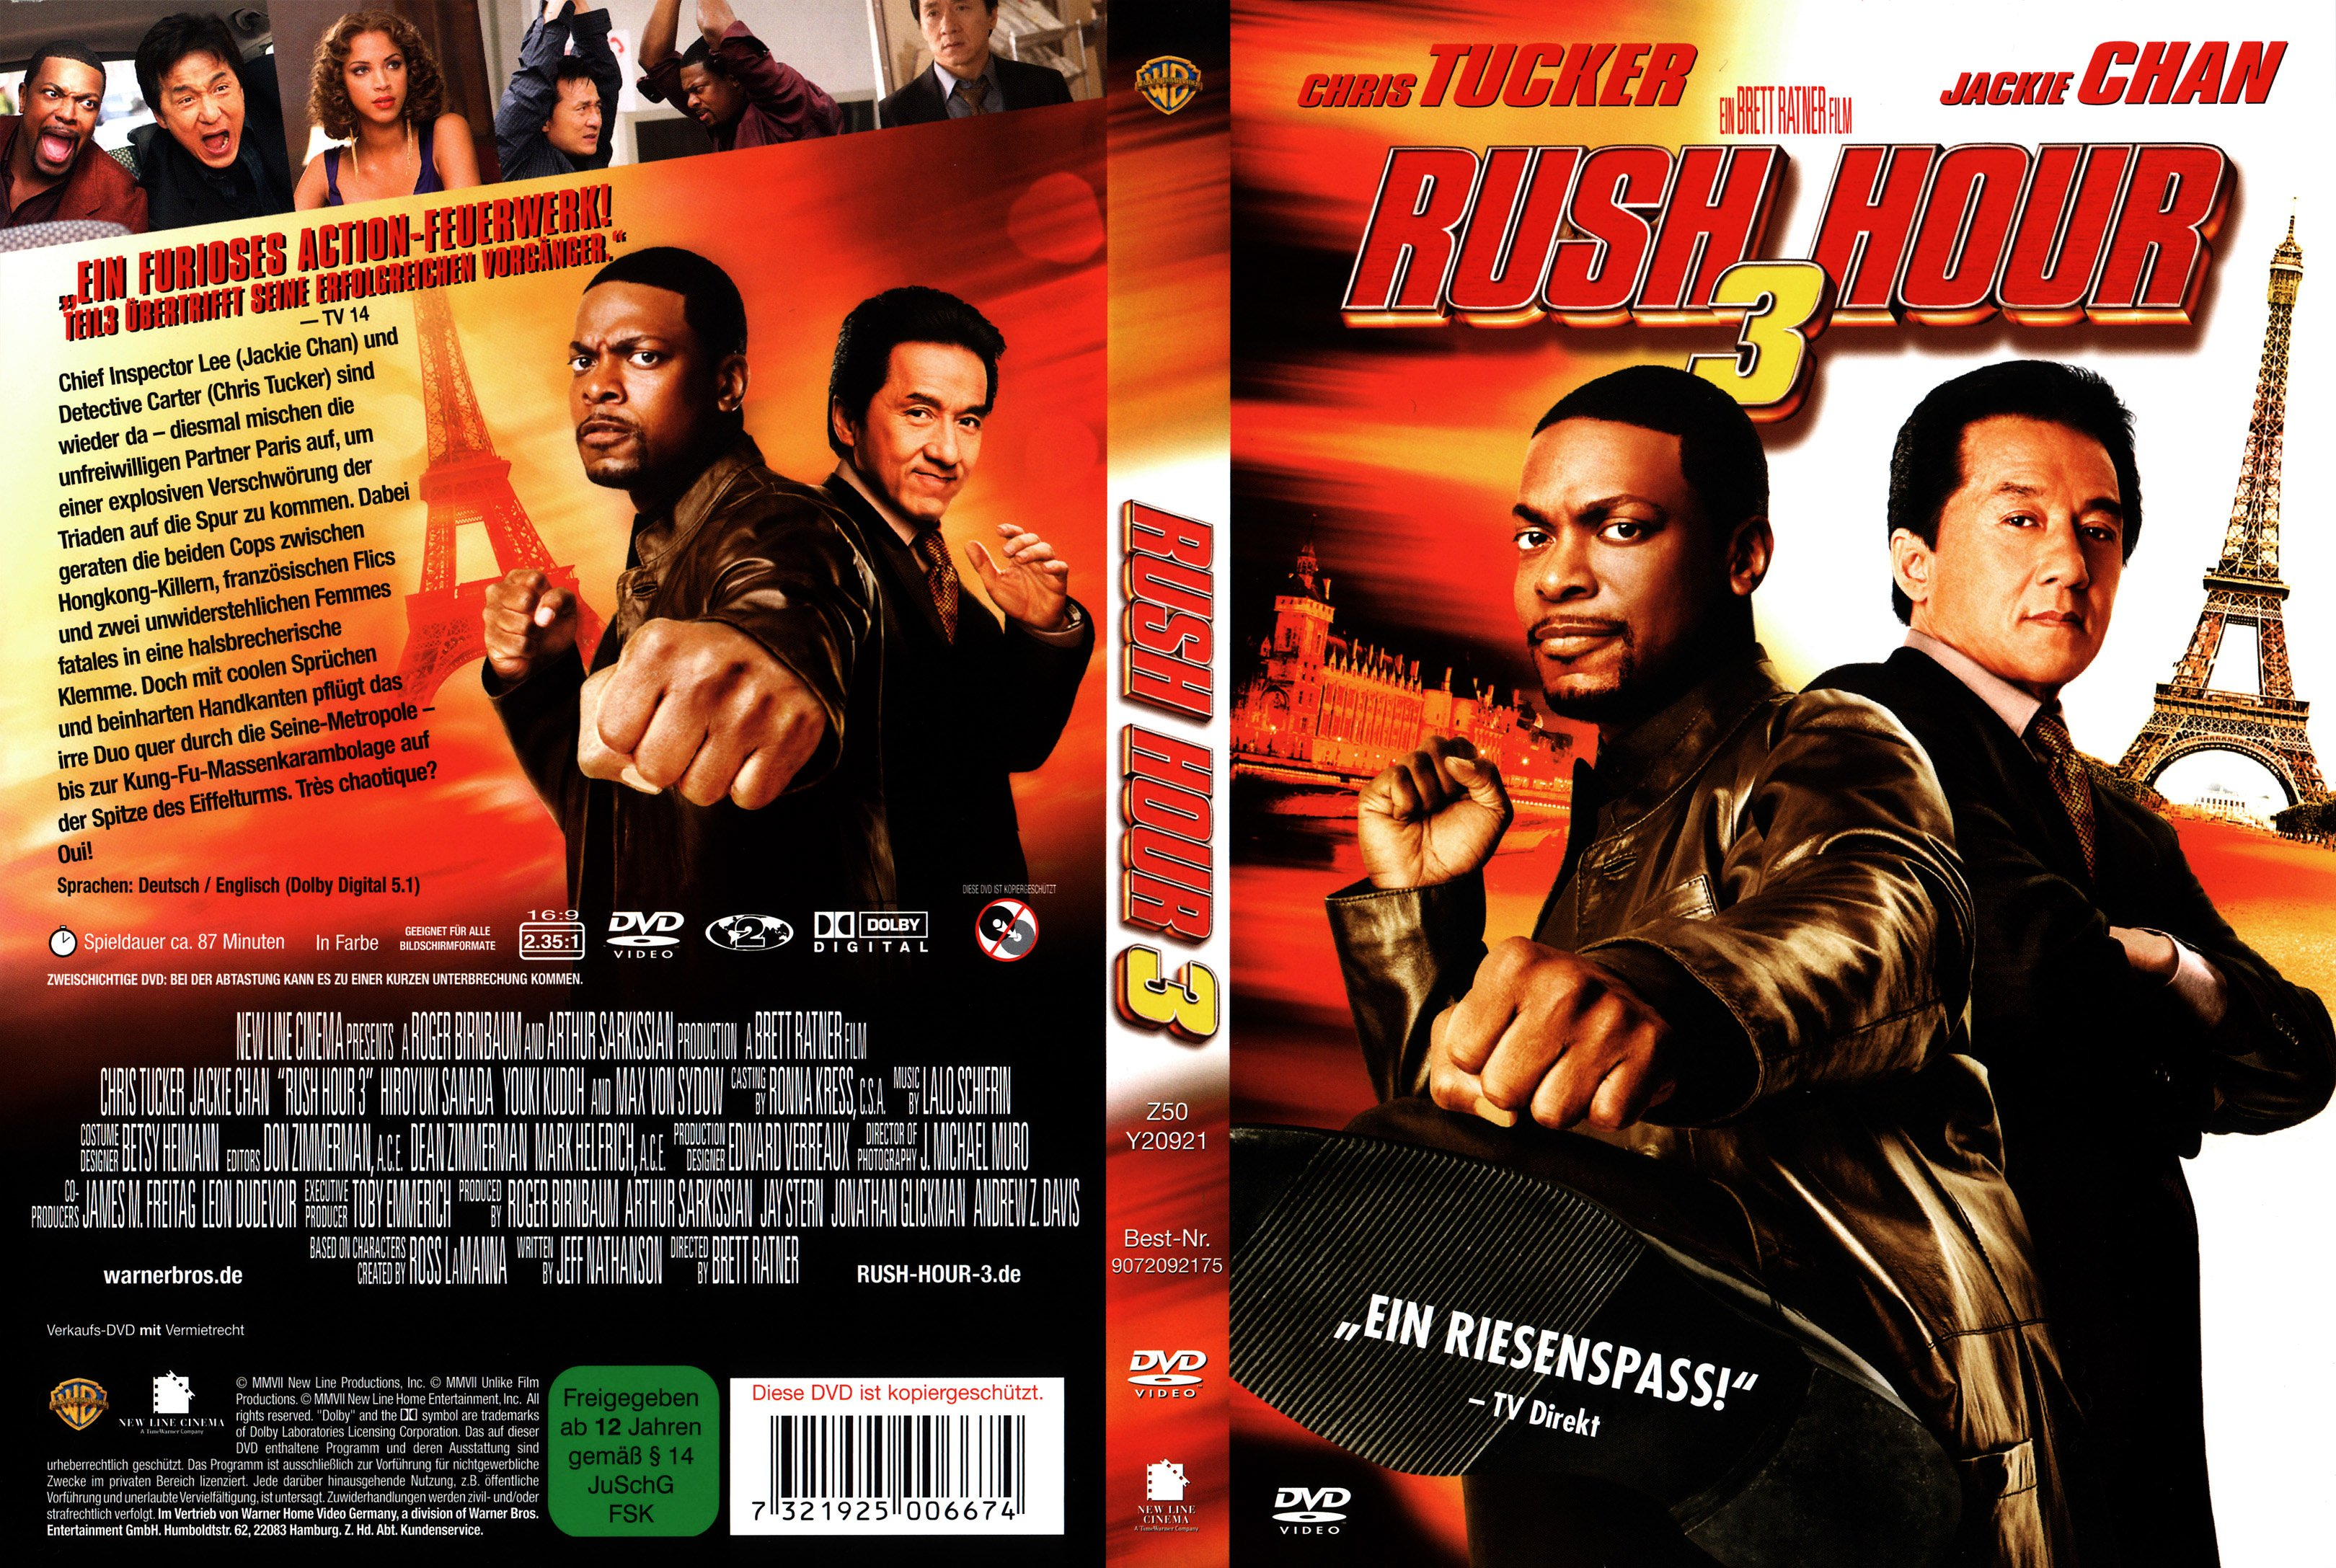 Rush Hour 3 Deutsch Ganzer Film